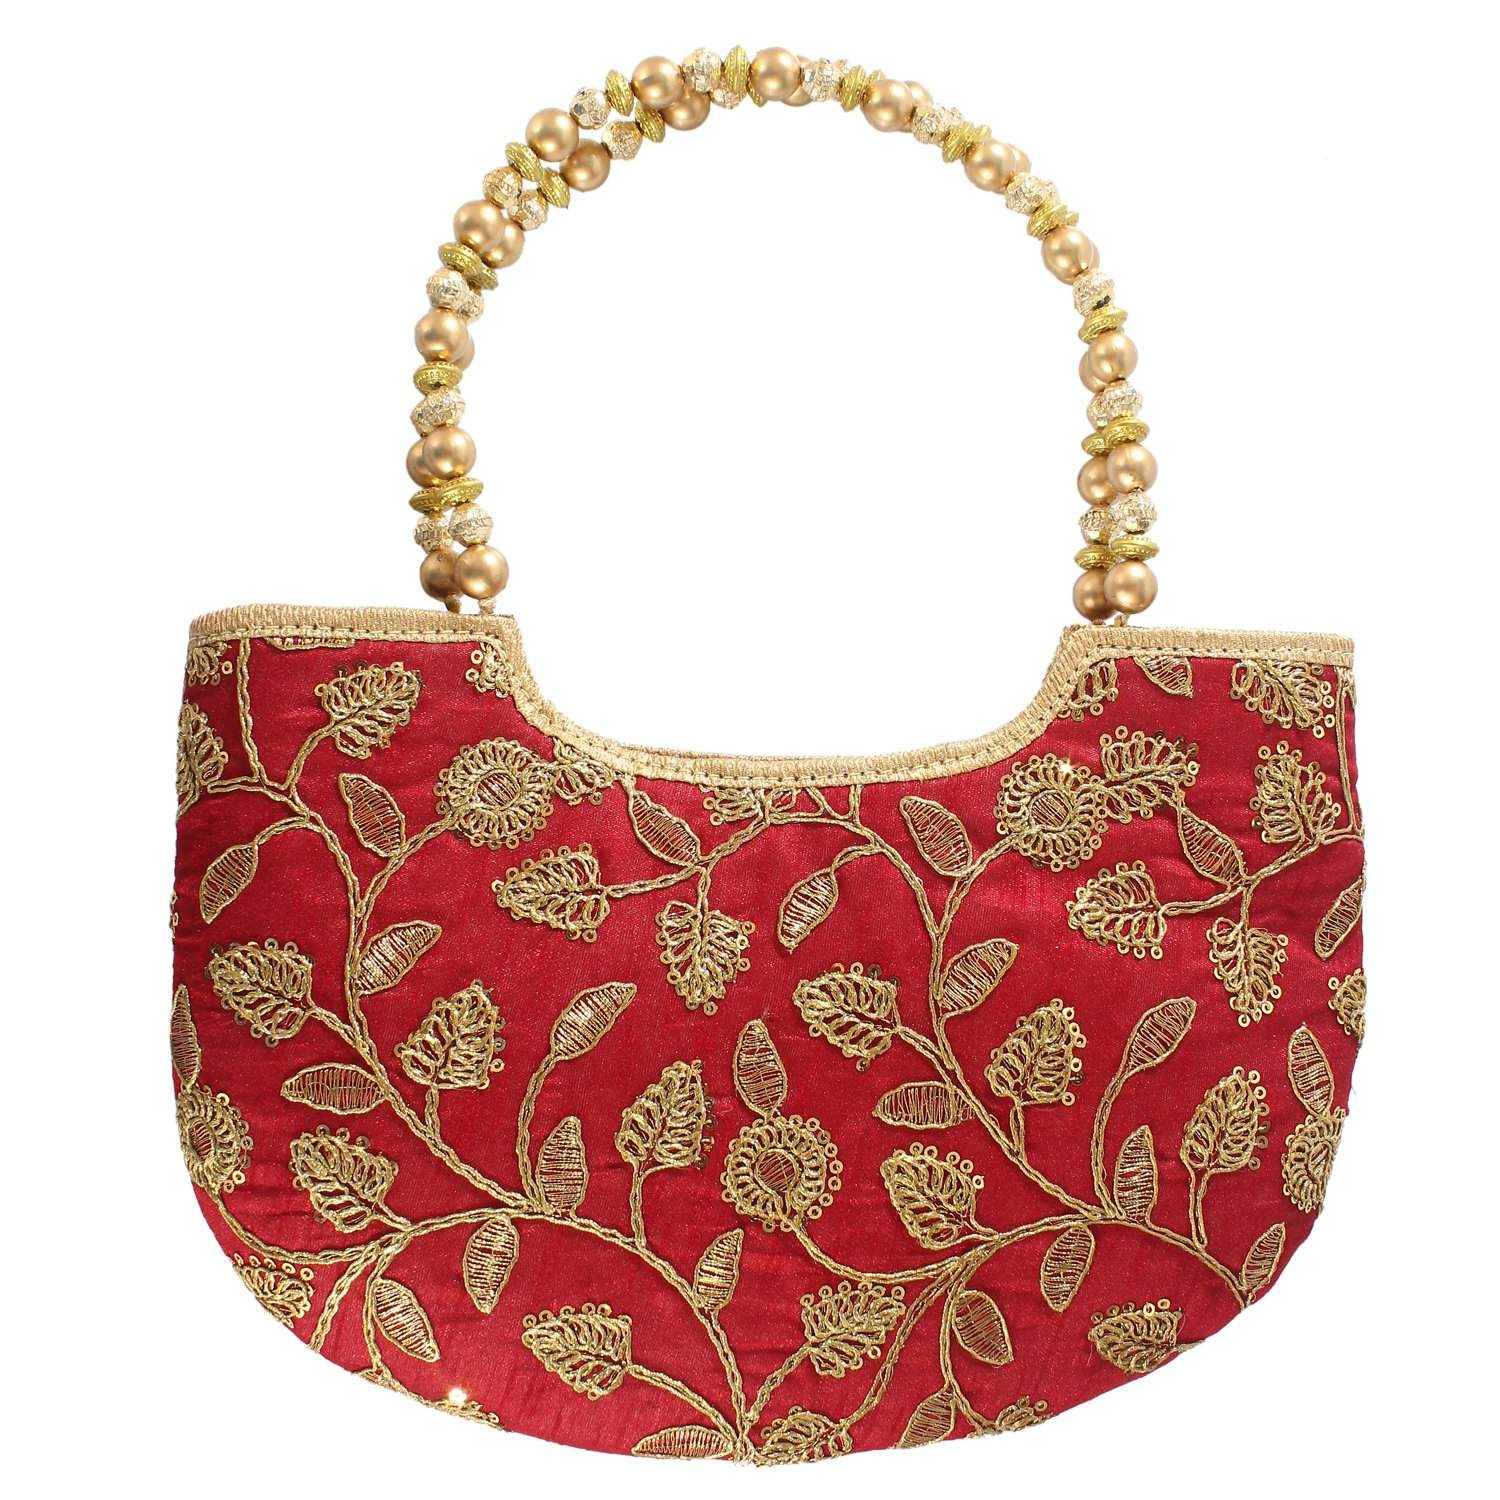 Ethnic Silk Hand Bag with Embroidery Work (Maroon) - Bagaholics Gift